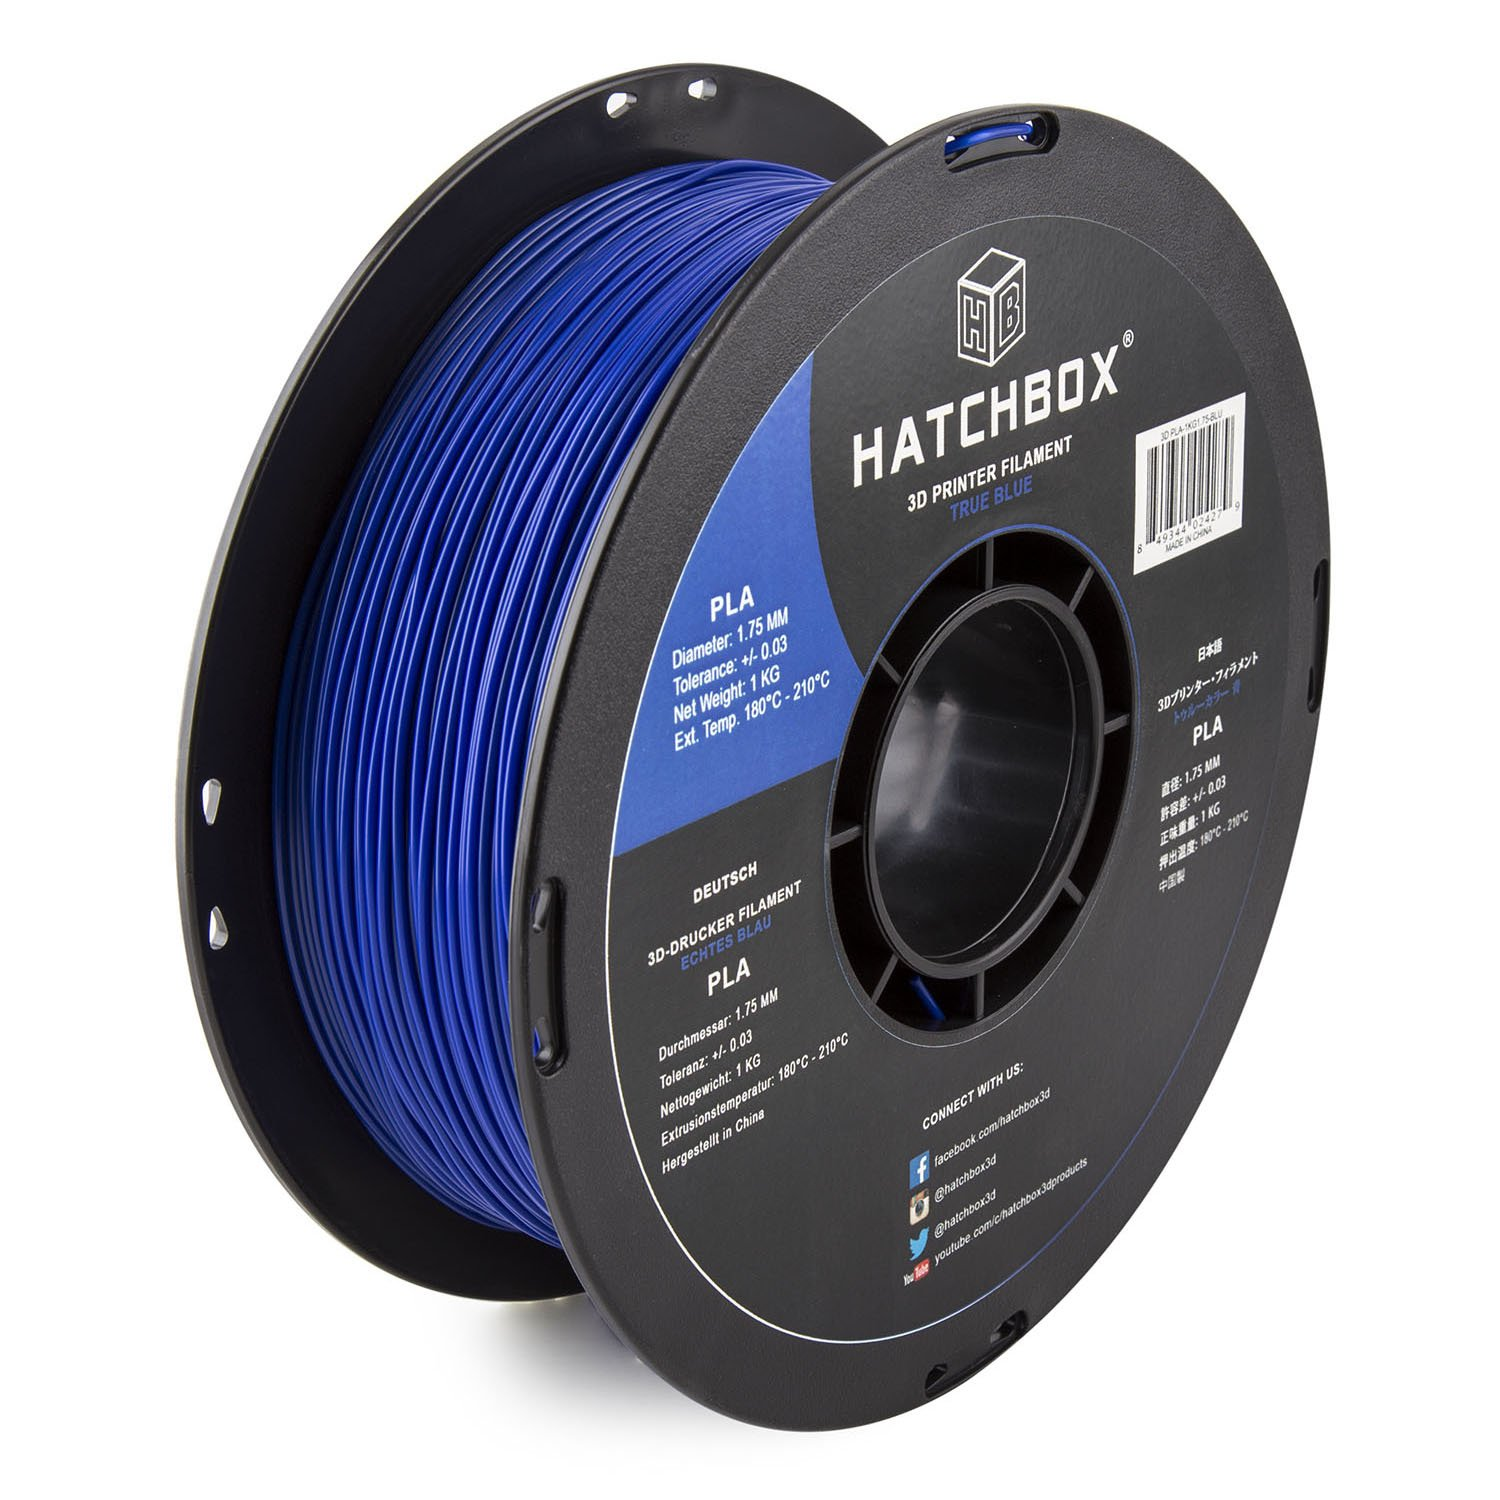 HATCHBOX PLA 3D Printer Filament, Dimensional Accuracy +/- 0.03 mm, 1 kg Spool, 1.75 mm, Blue, Model Number: 3D PLA-1KG1.75-BLU